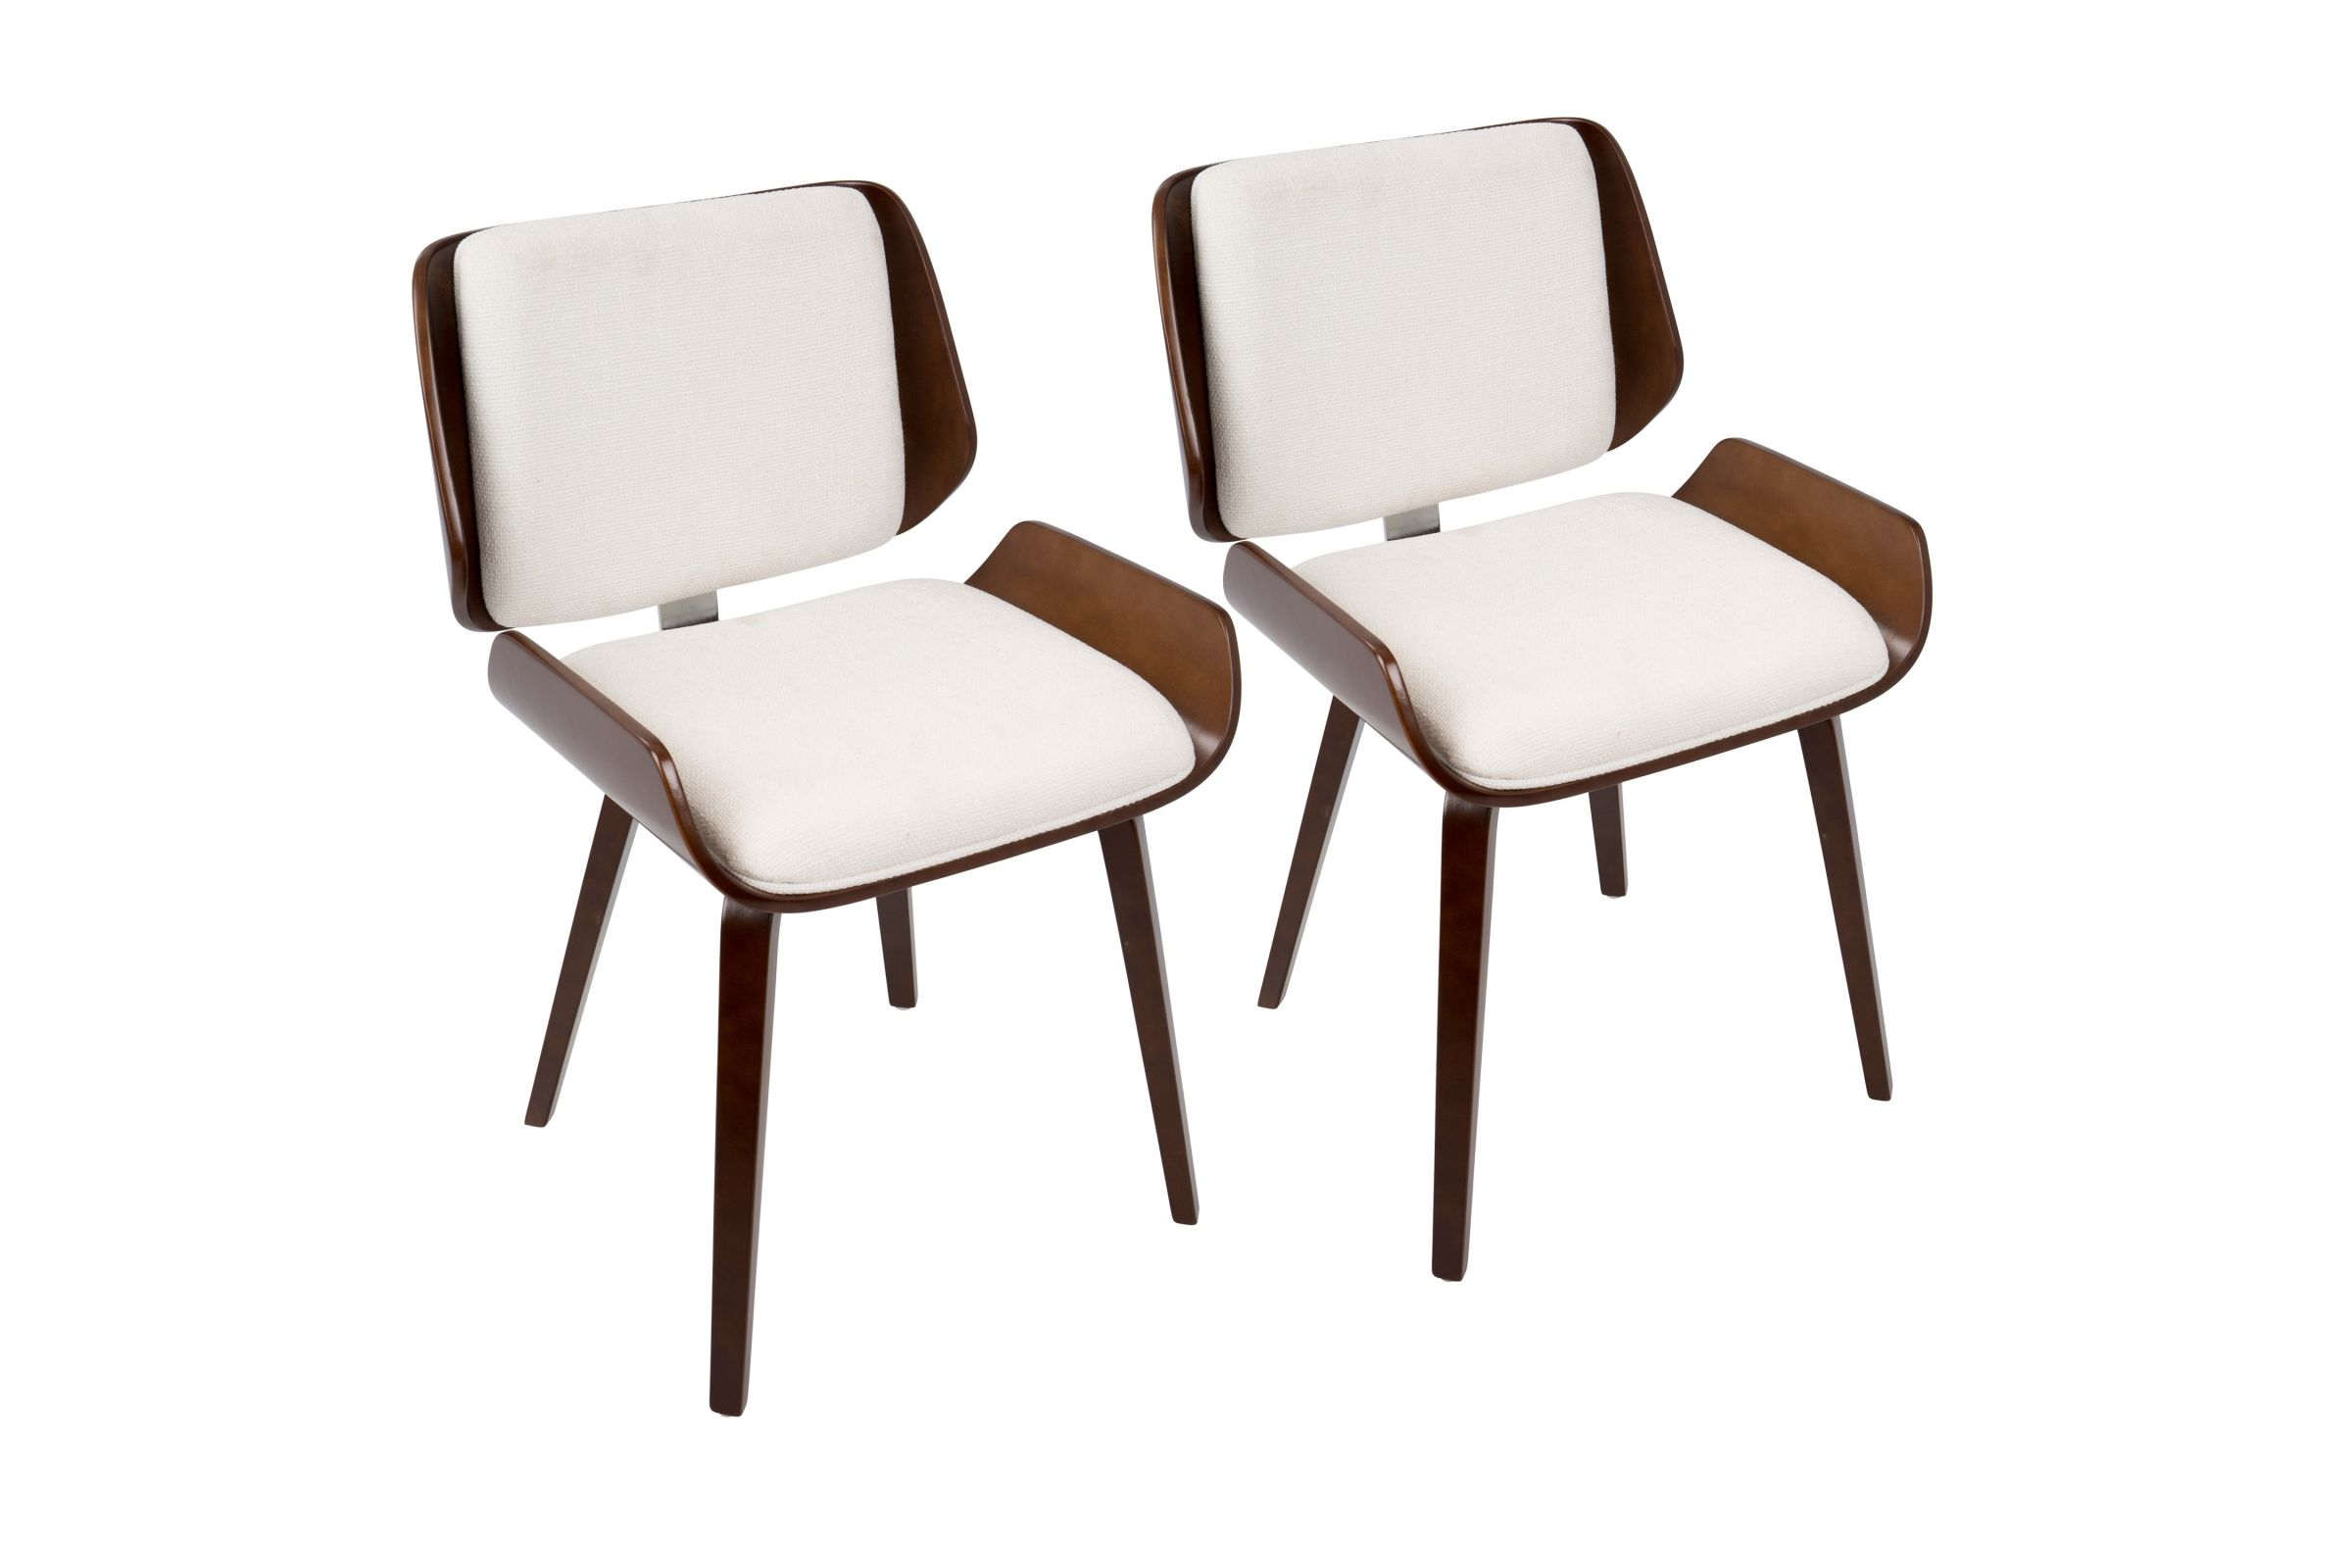 Santi Mid Century Modern Dining Chairs Set Of 2 In Cherry With